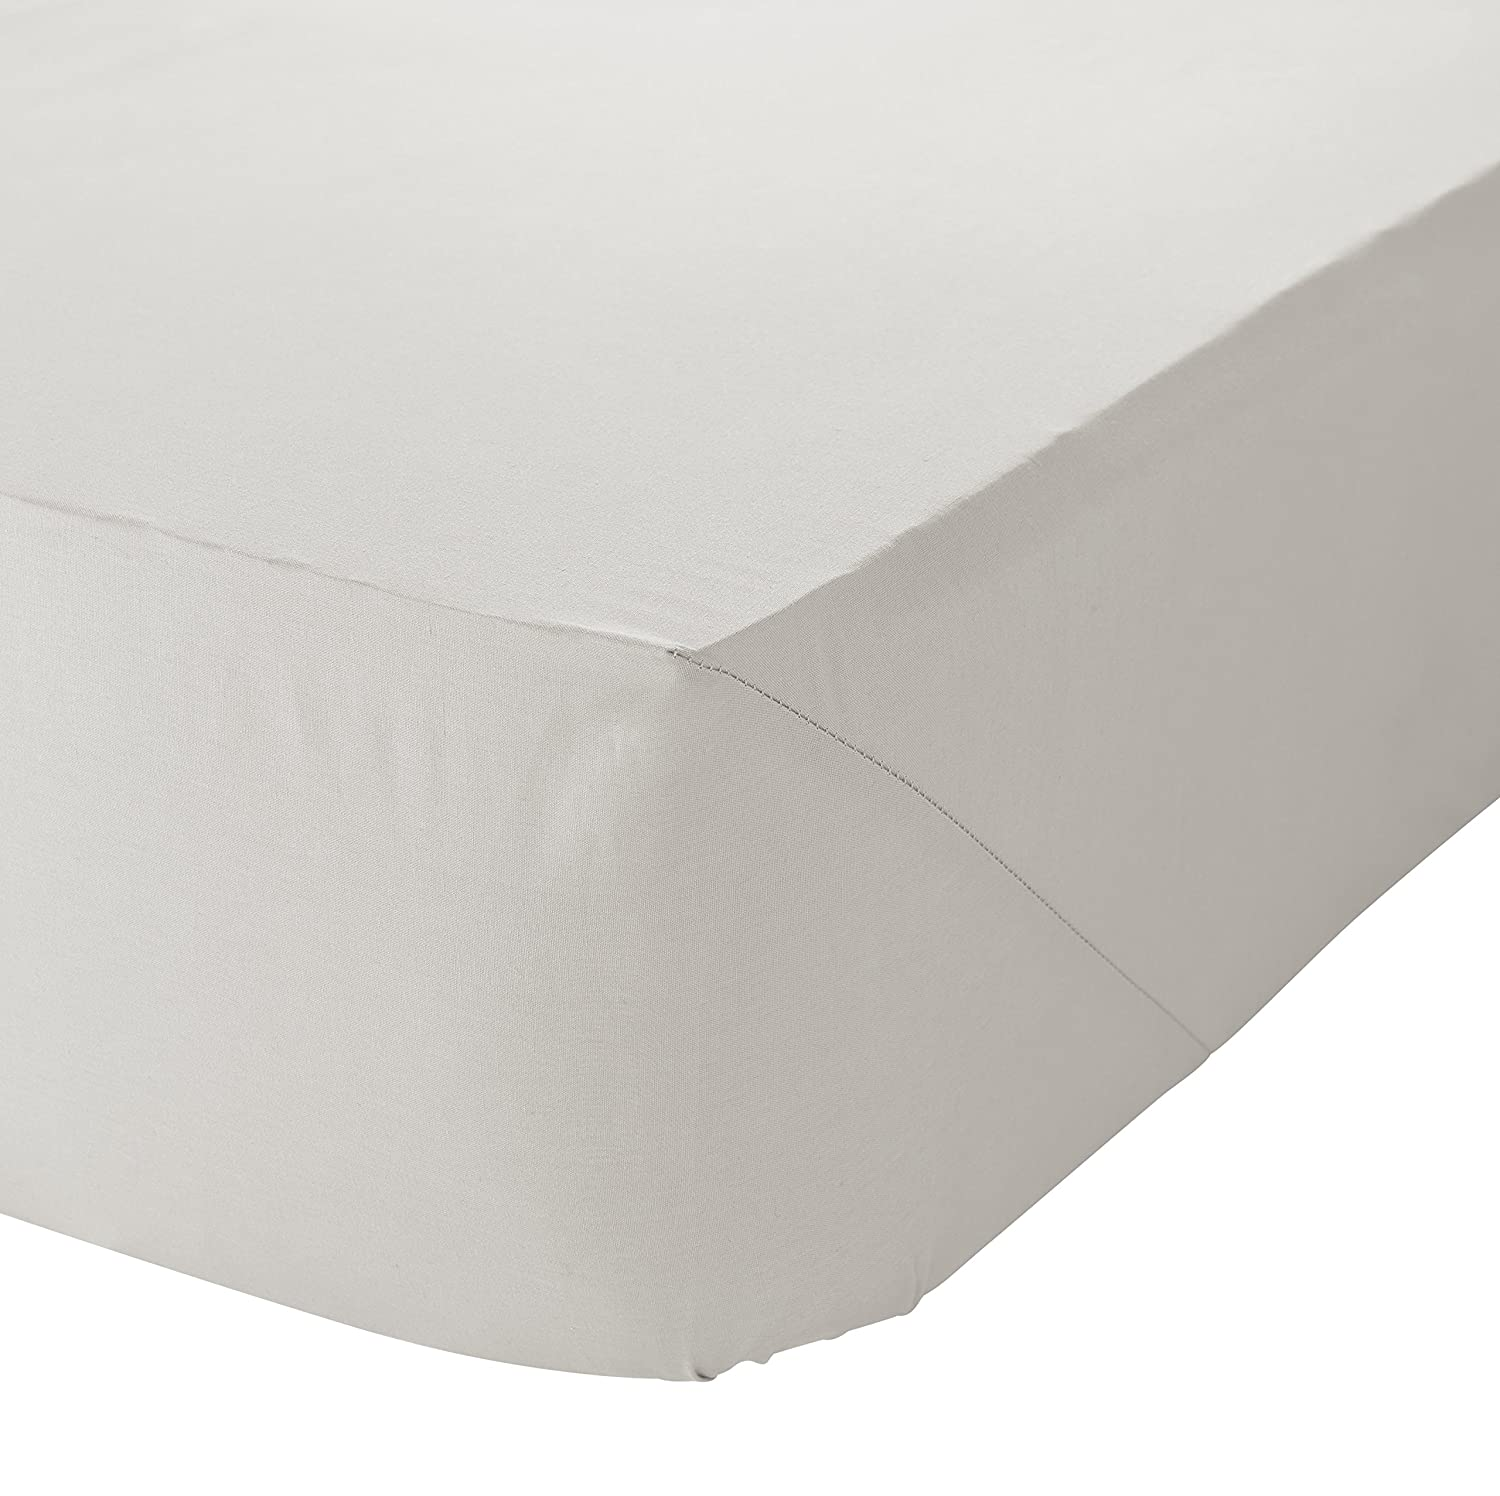 Catherine Lansfield Brushed Cotton Double Fitted Sheet White Turner Bianca BD-39950-W-DFD-WH